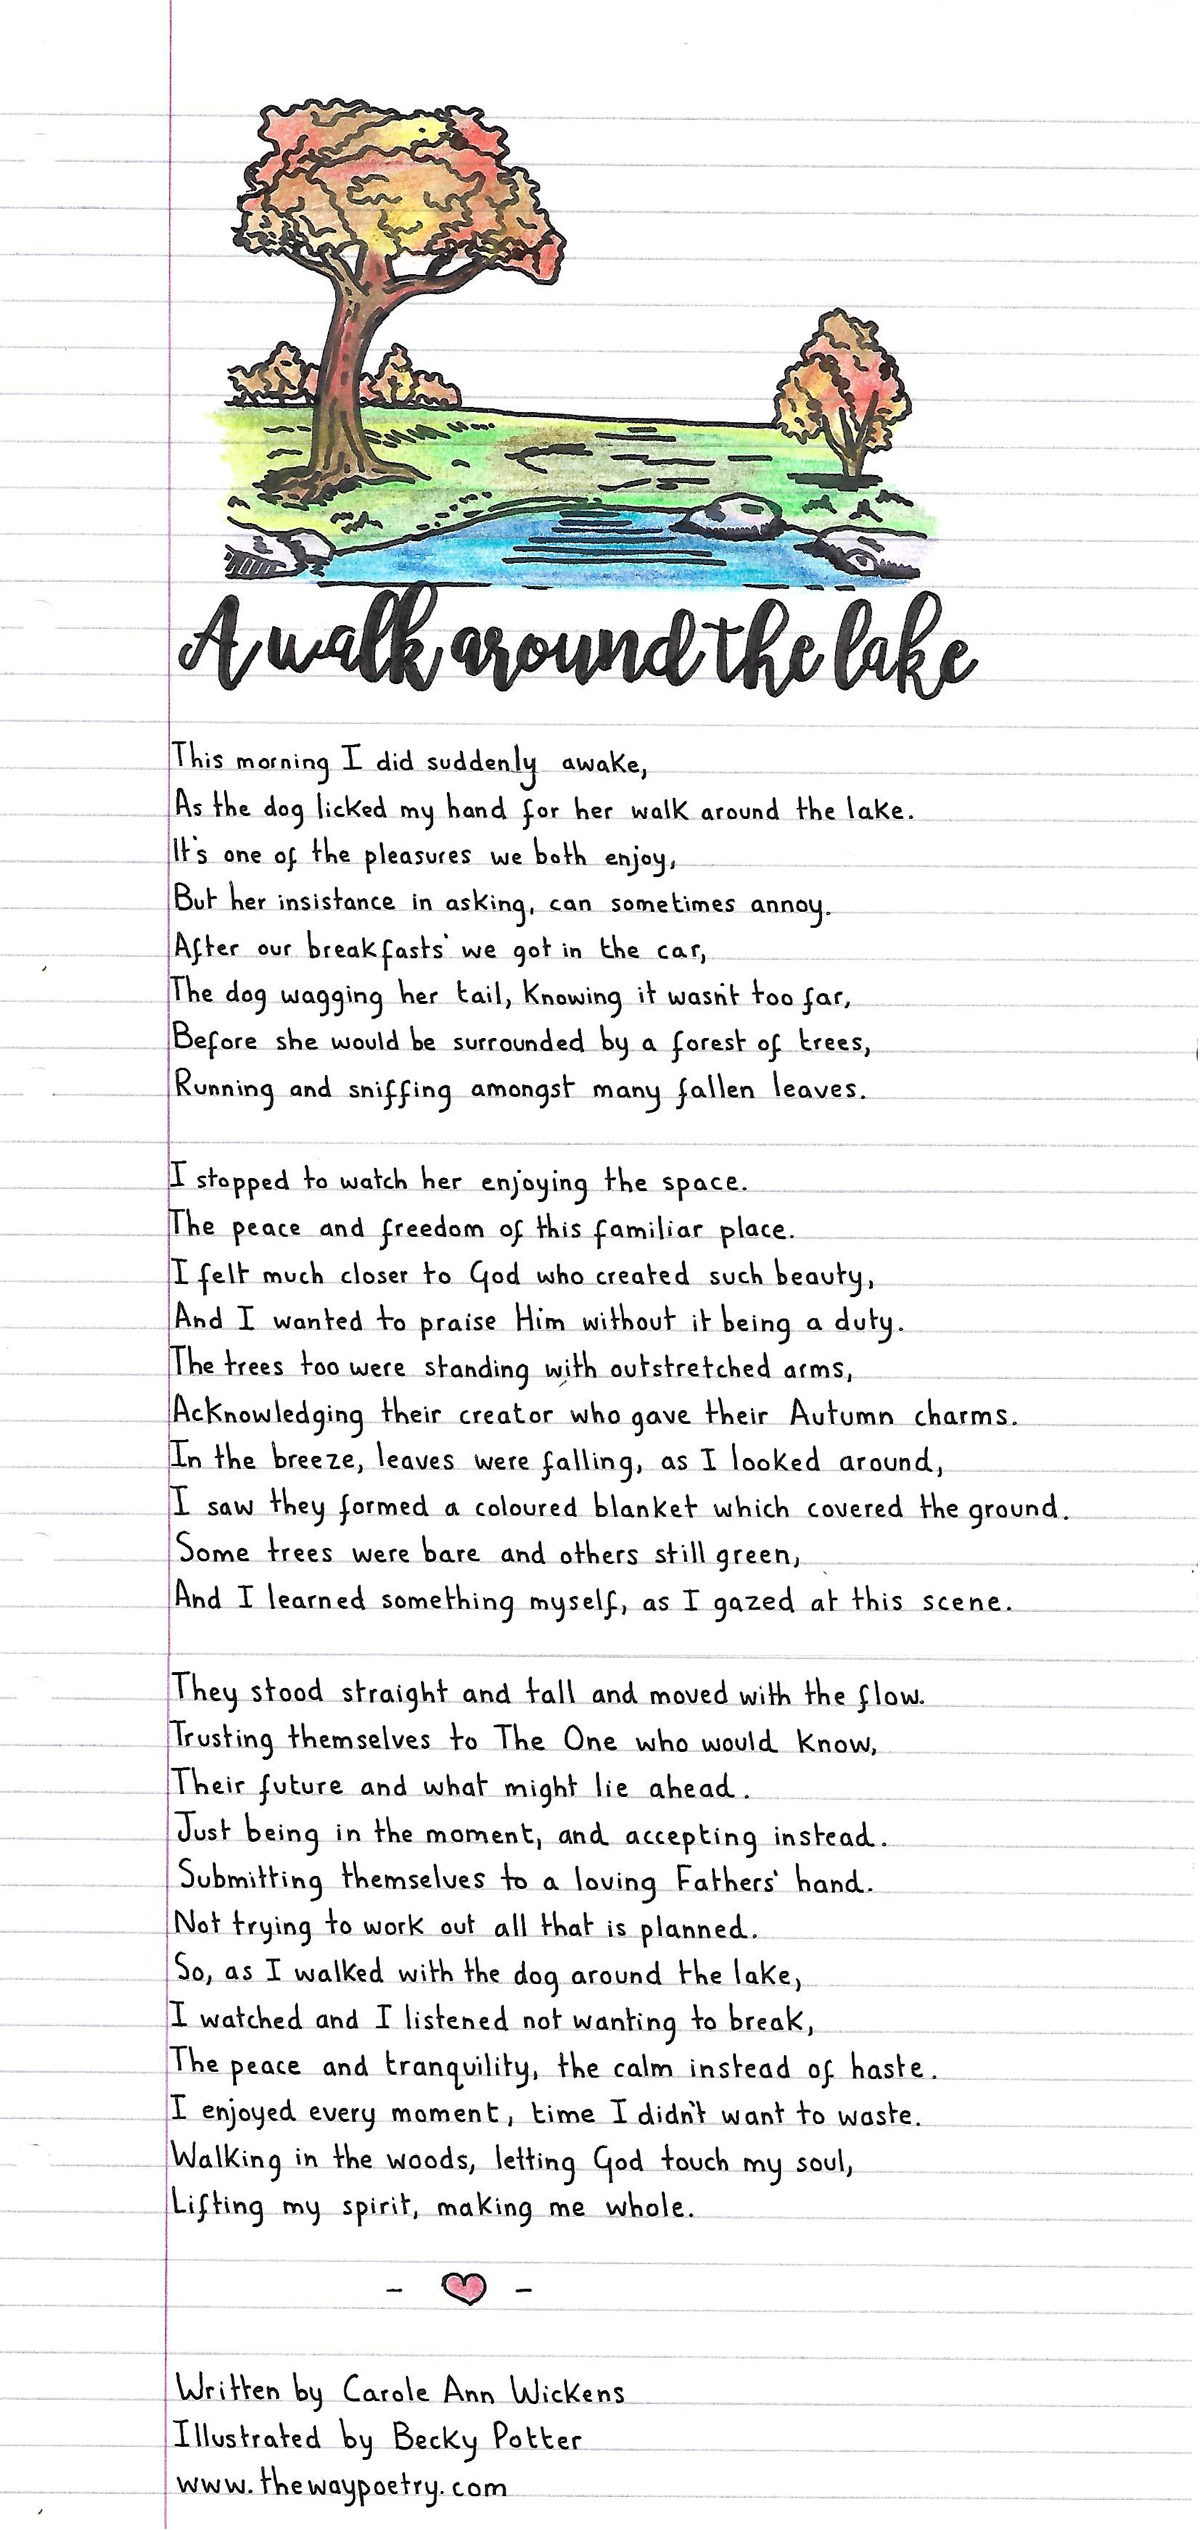 A Walk Around The Lake by Carole Ann Wickens